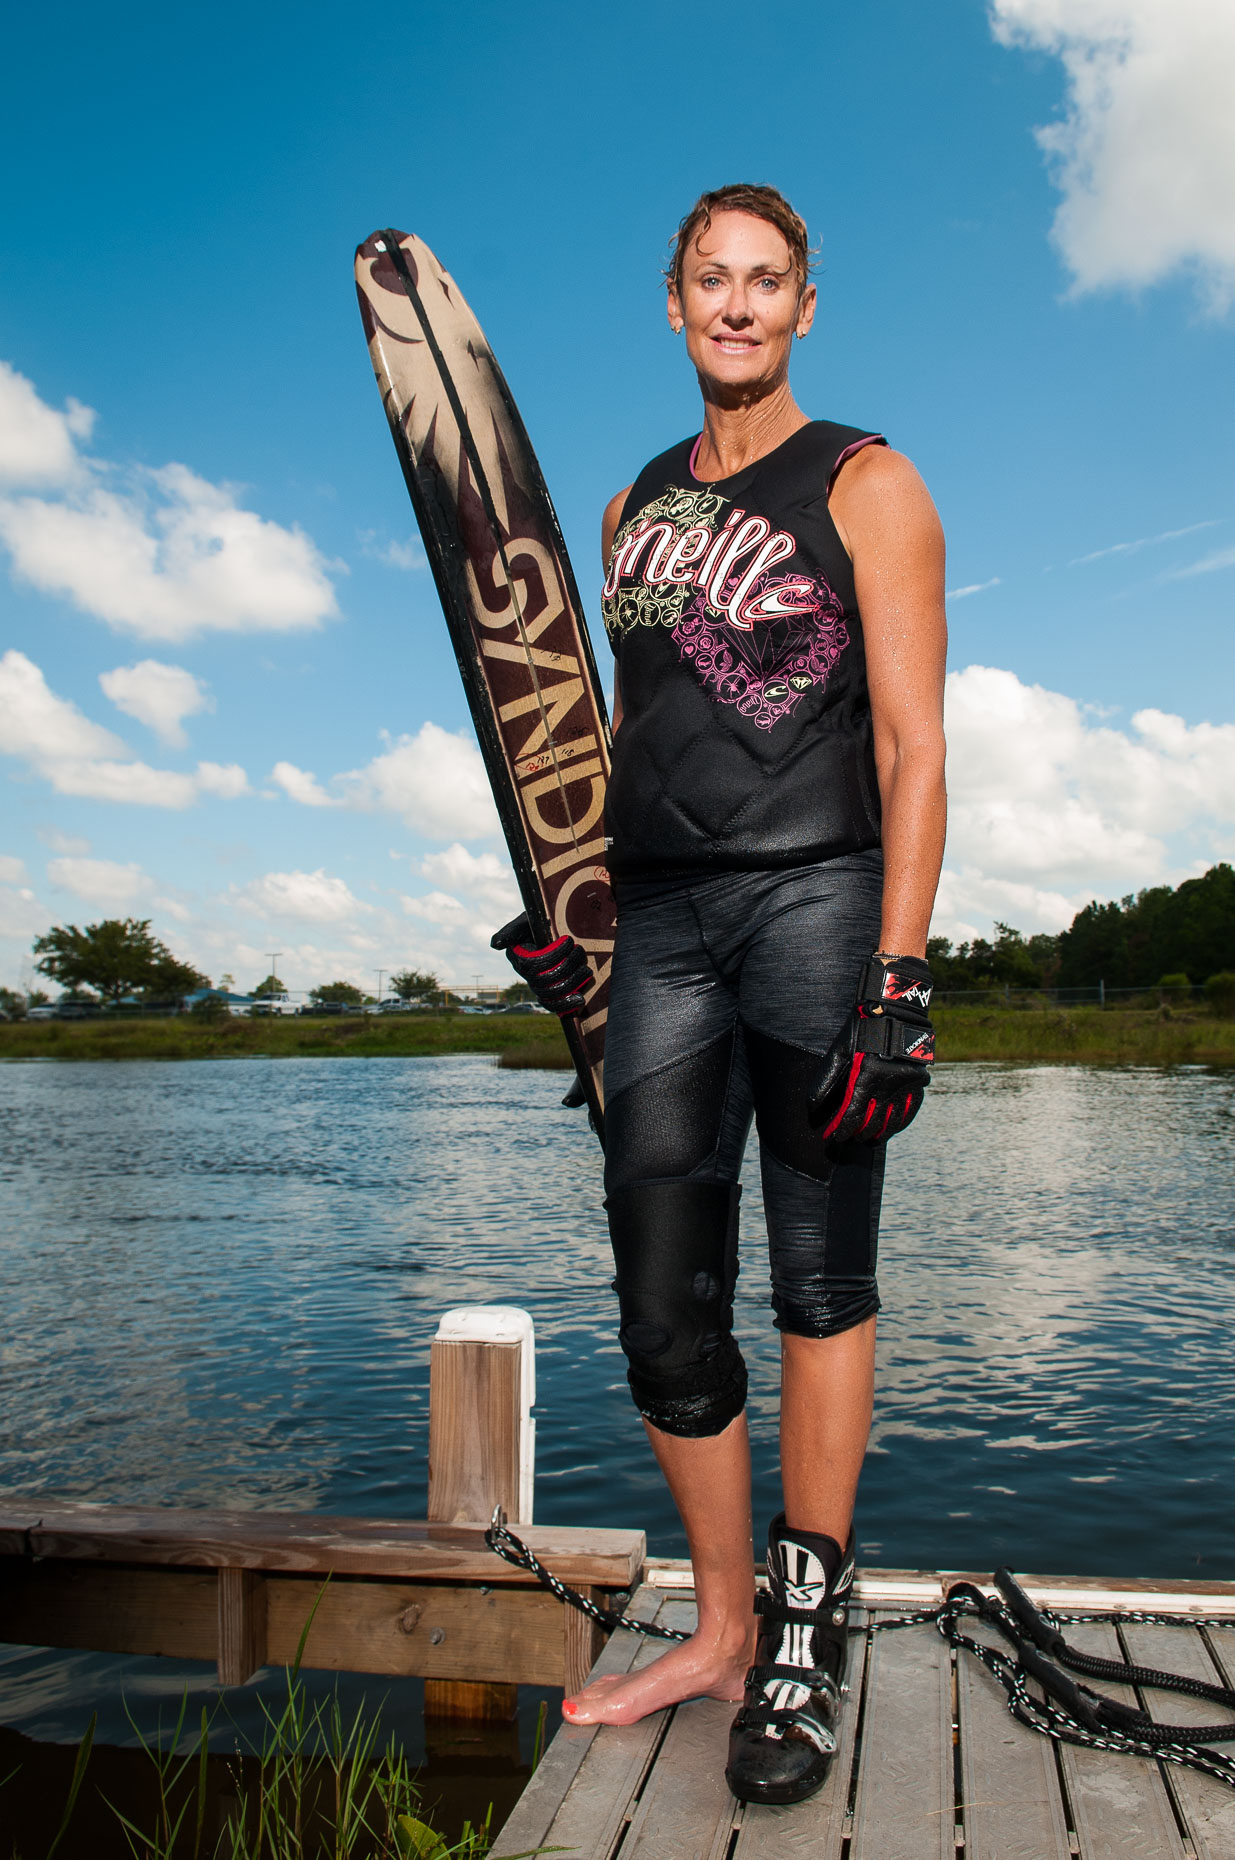 Hall of Fame Waterski Champion - Jen Lapoint - Athlete Portrait